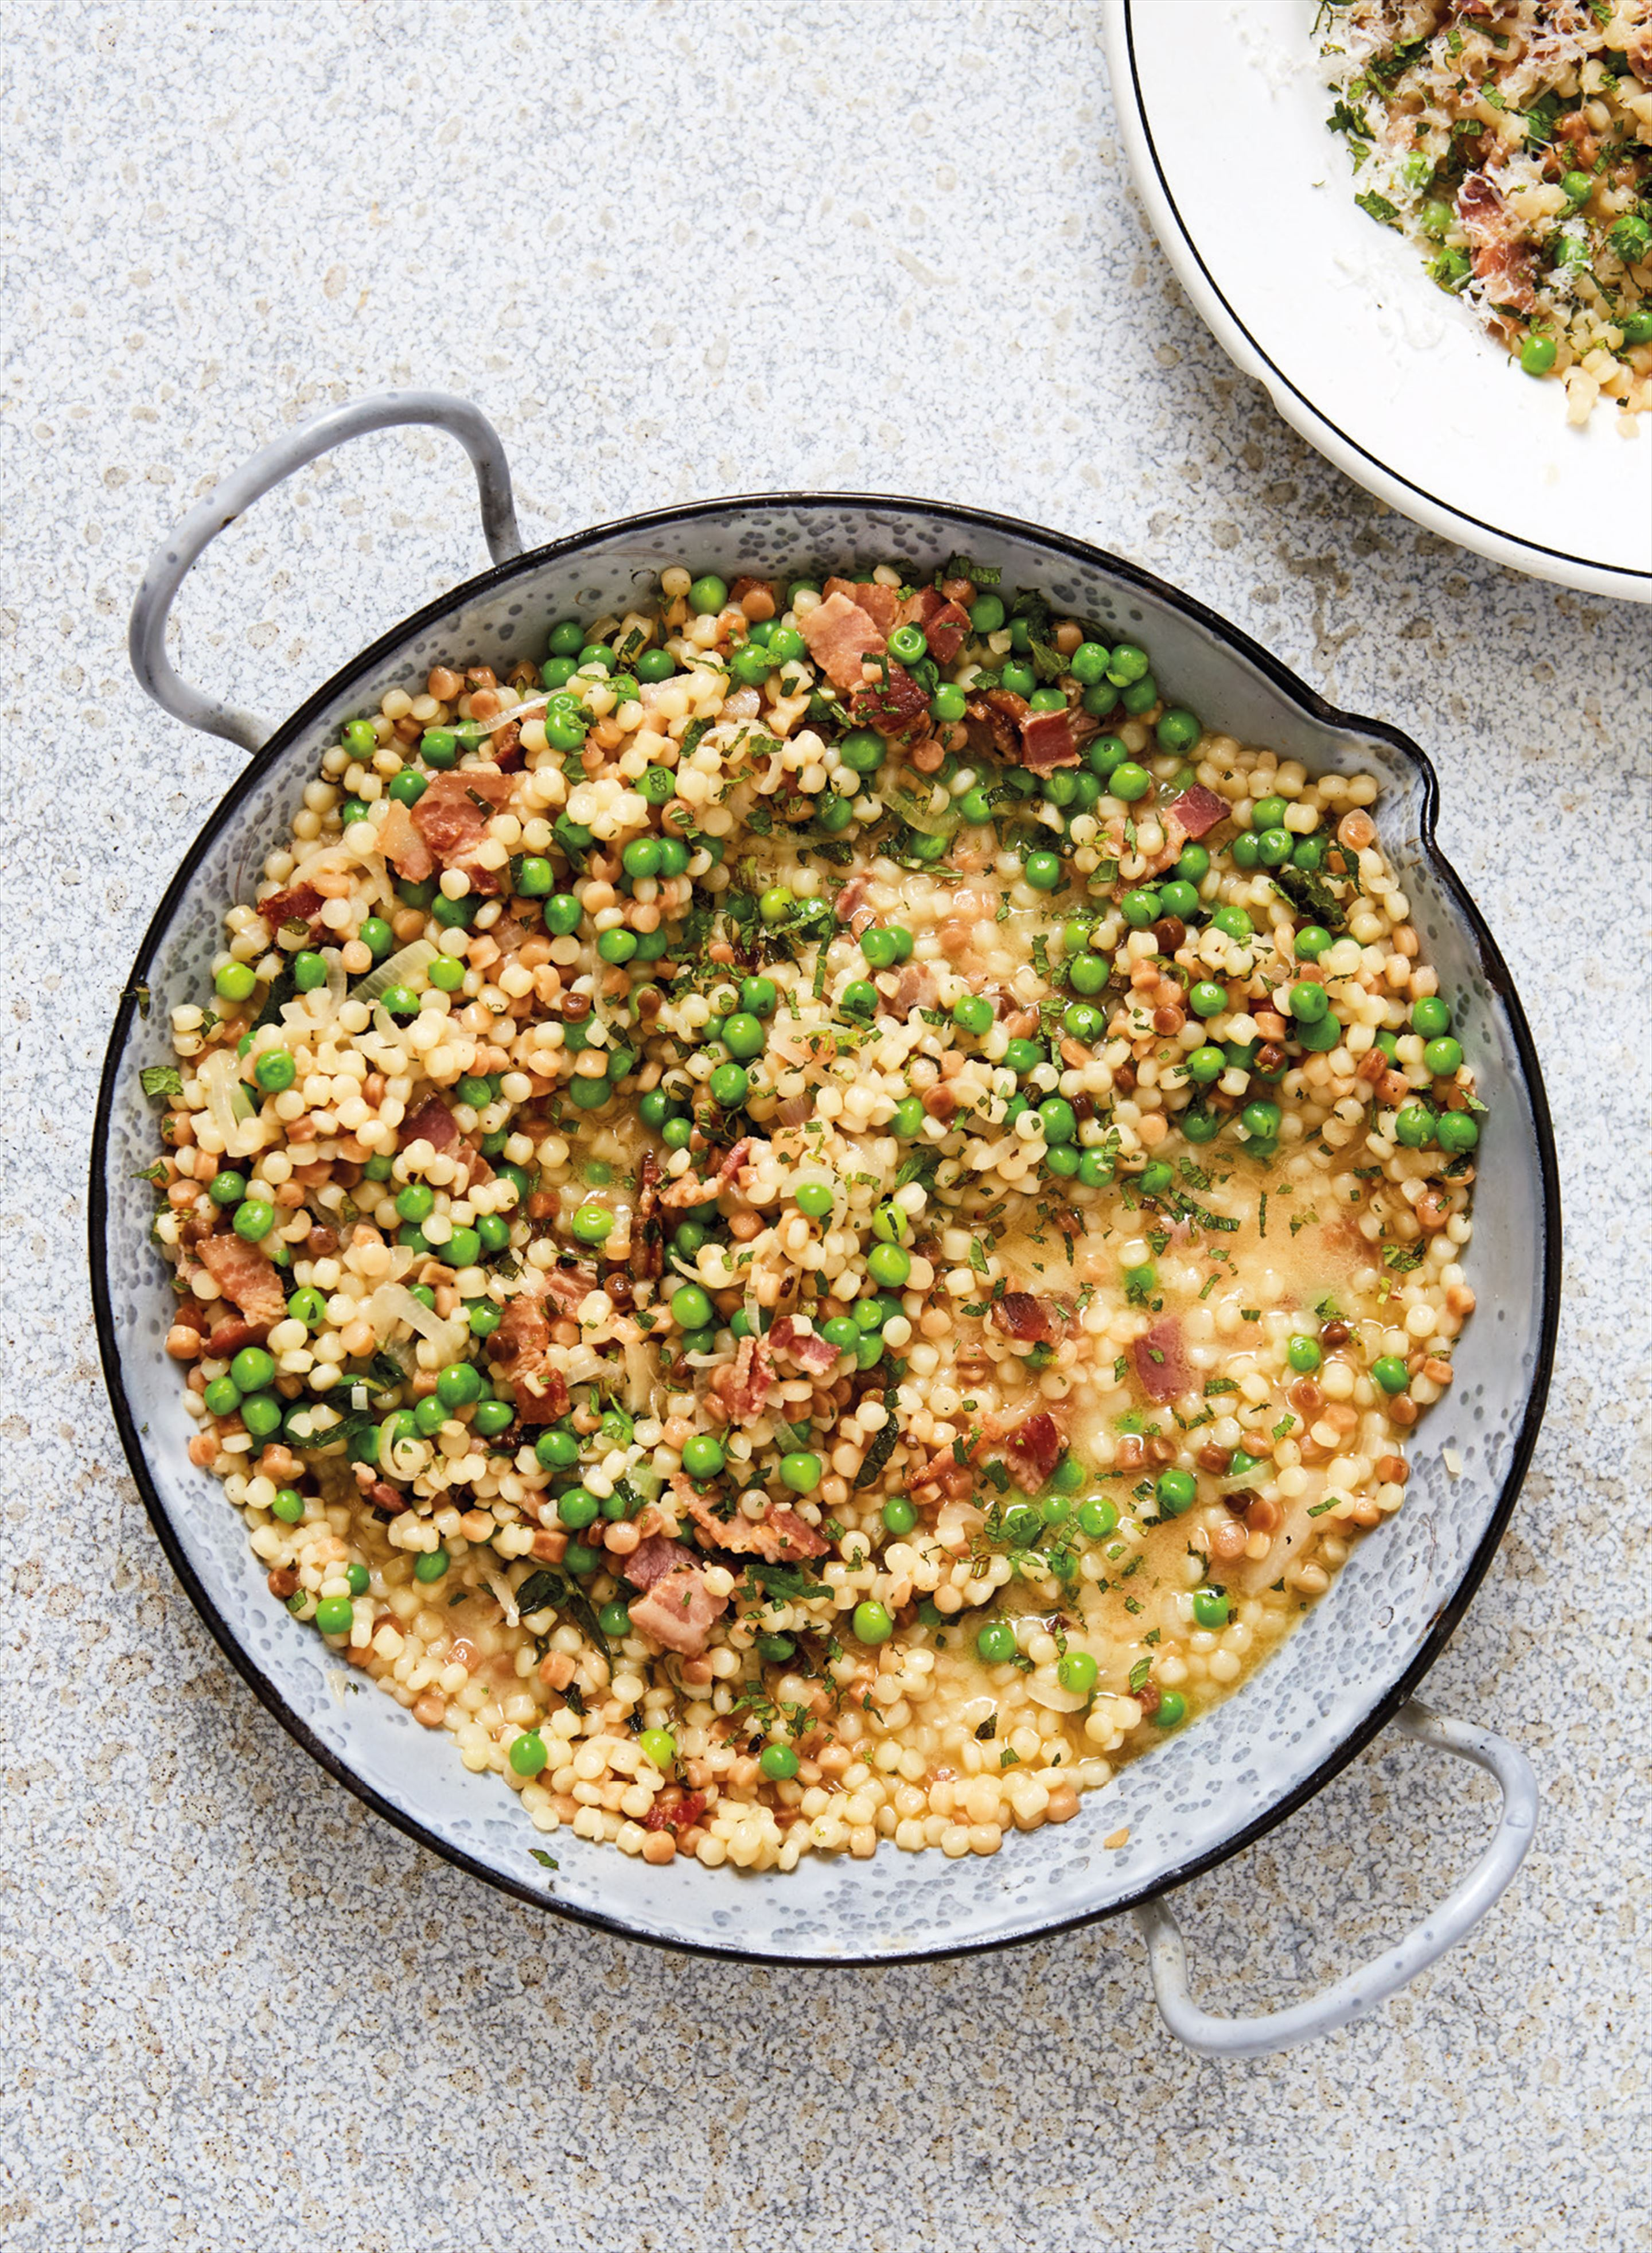 Fregola with bacon and peas